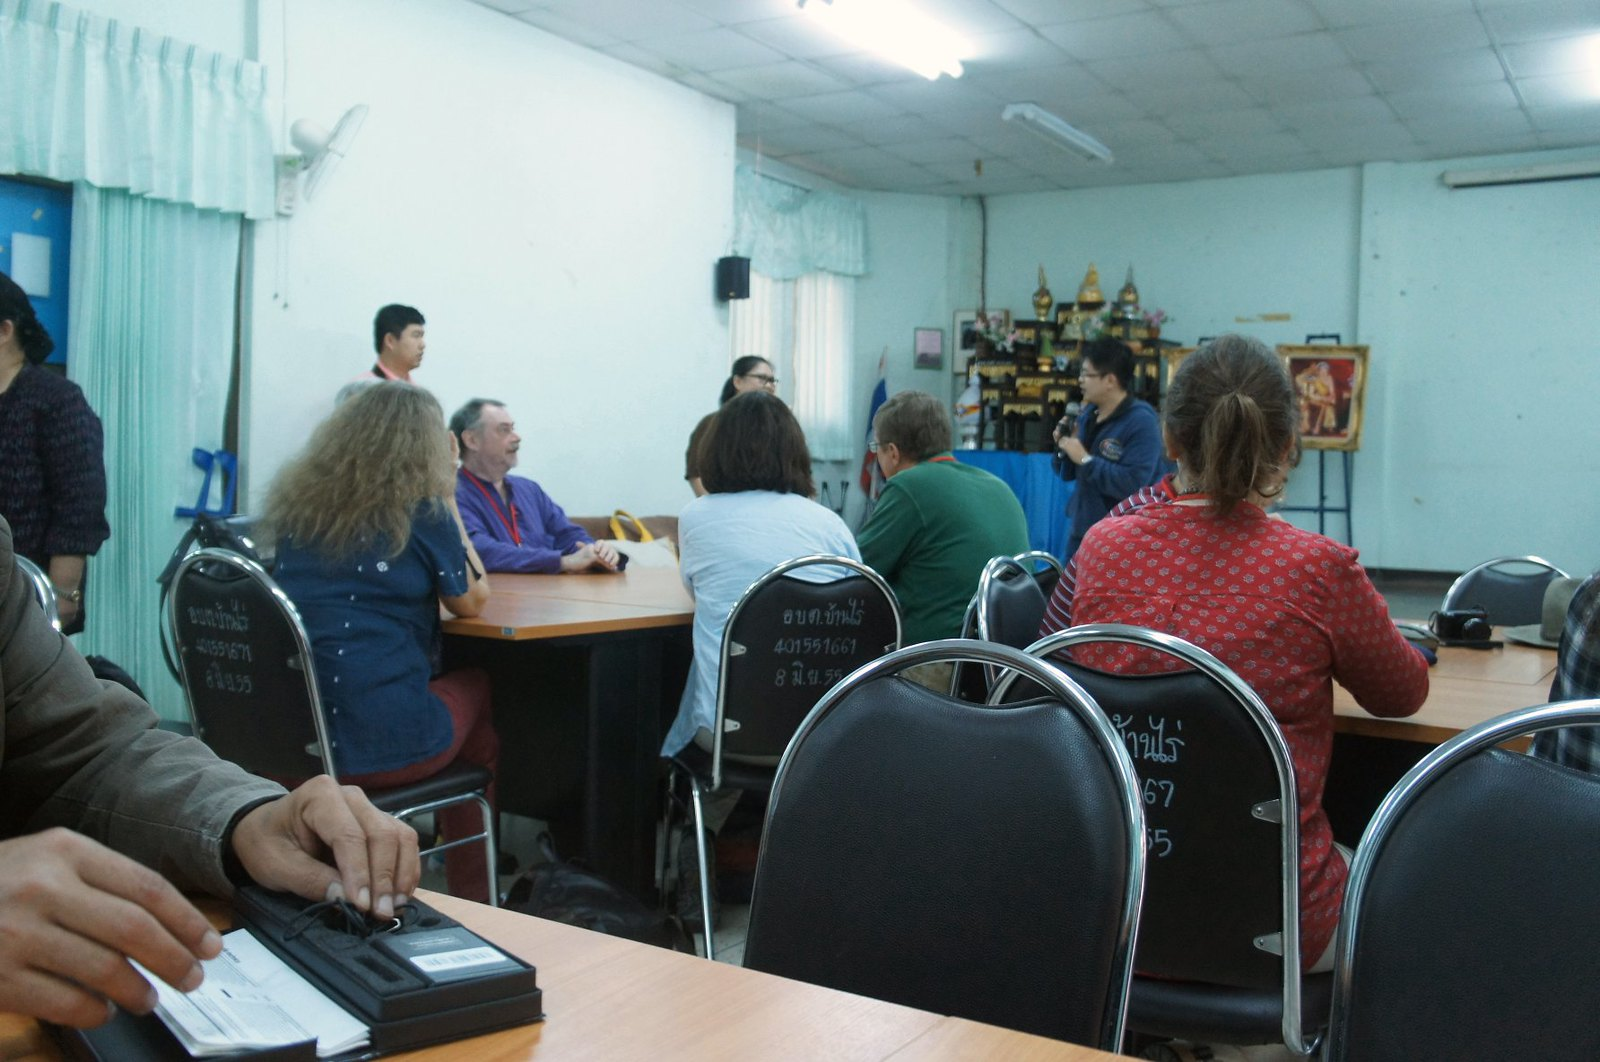 Meeting in the Nyah Kur community hall